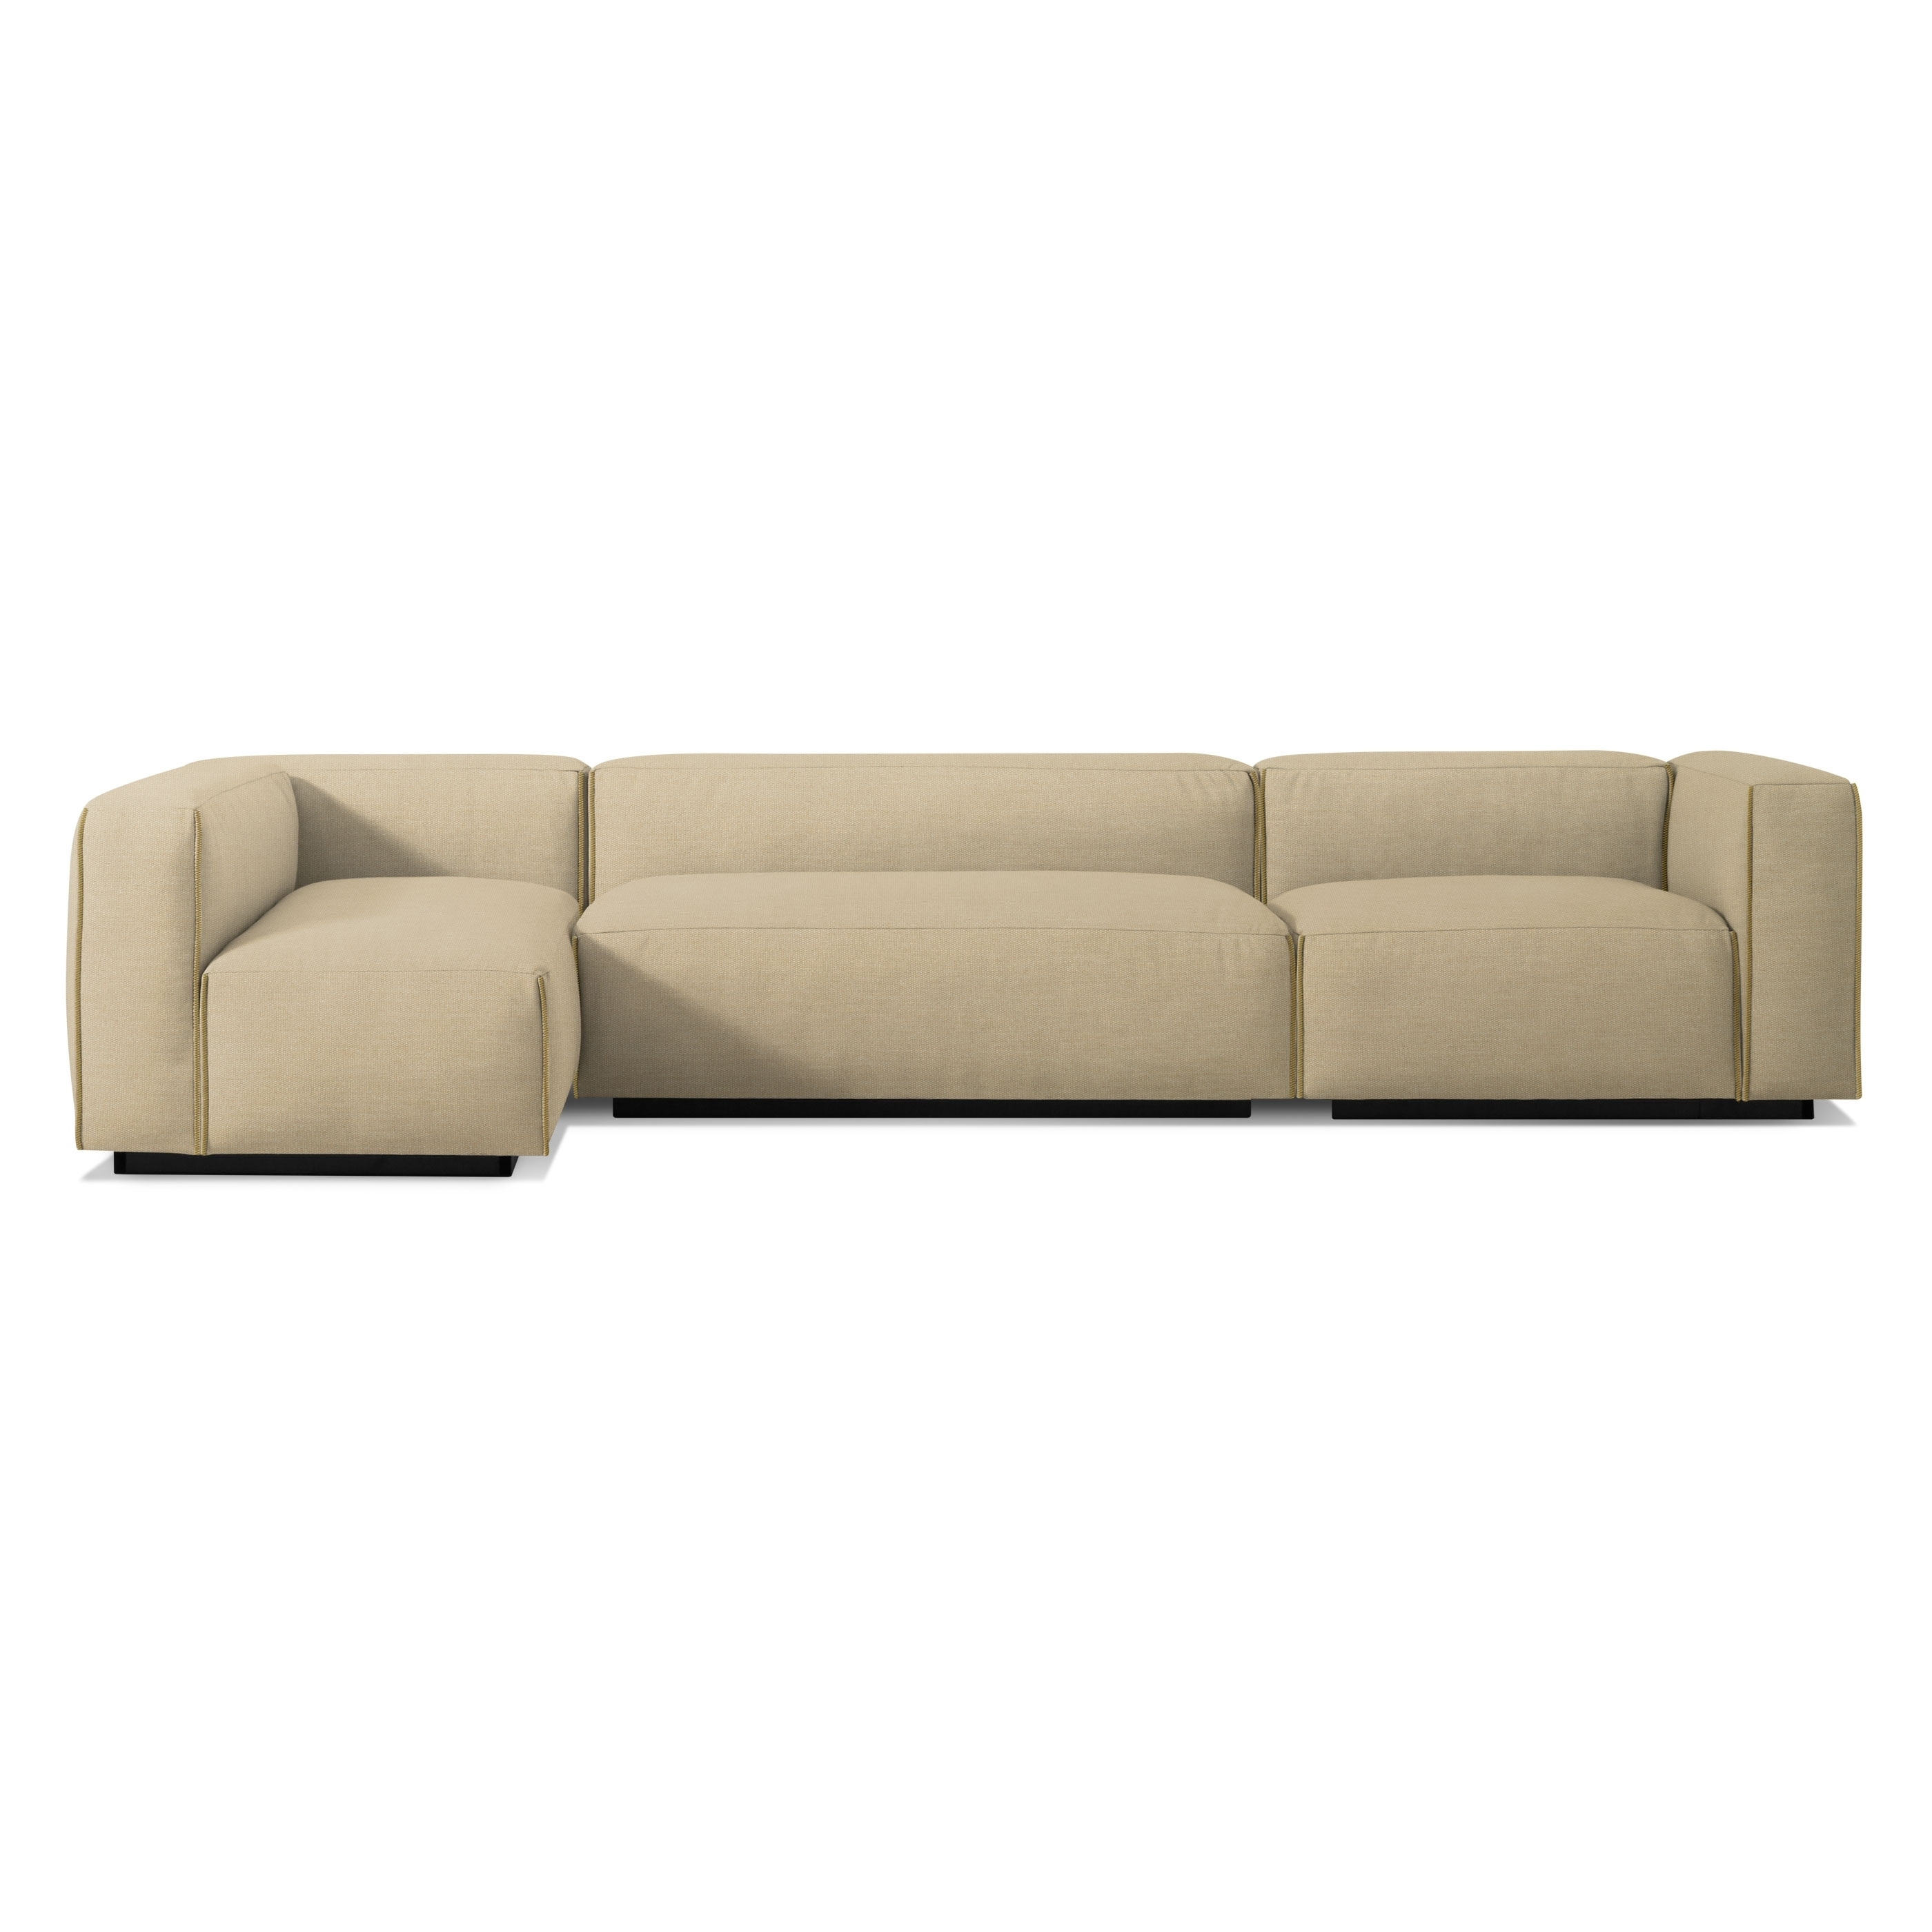 Newfoundland Sectional Sofas Regarding Widely Used Cleon Medium+ Sectional Sofa – Modern Sofas And Sectionals (View 15 of 20)